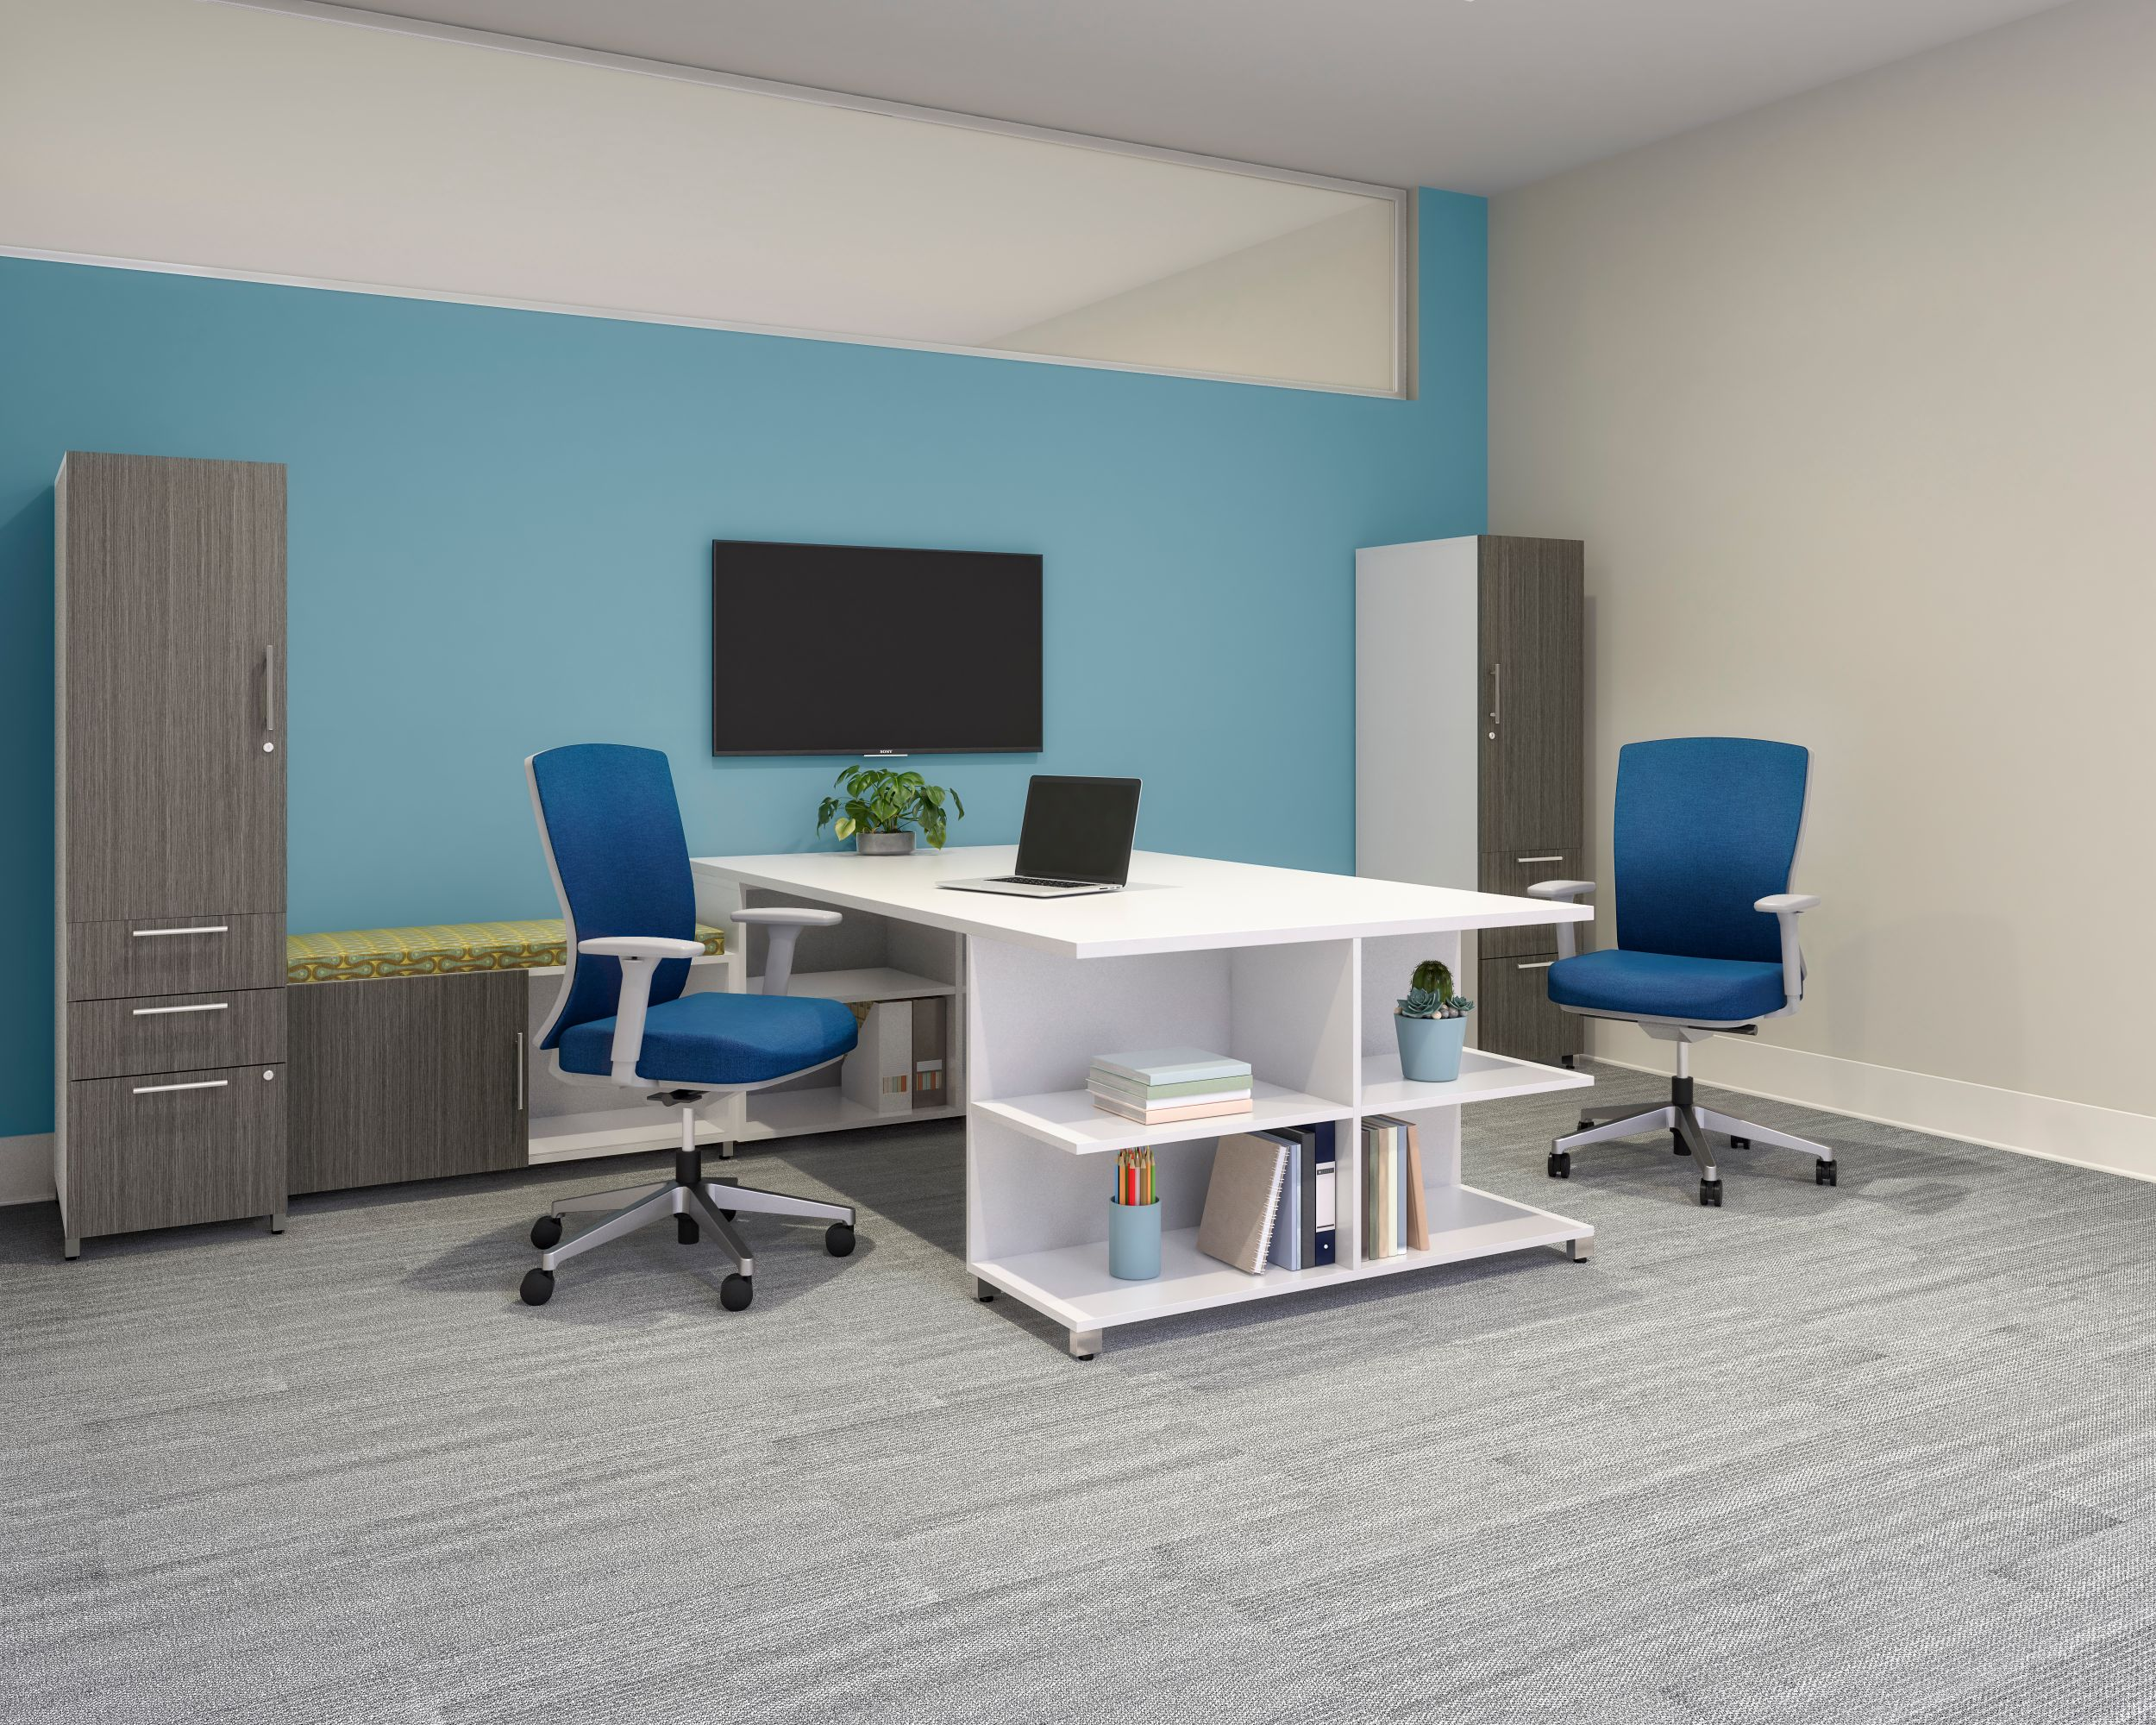 calibrate-up-custom-private-office-with-natick-seating_md